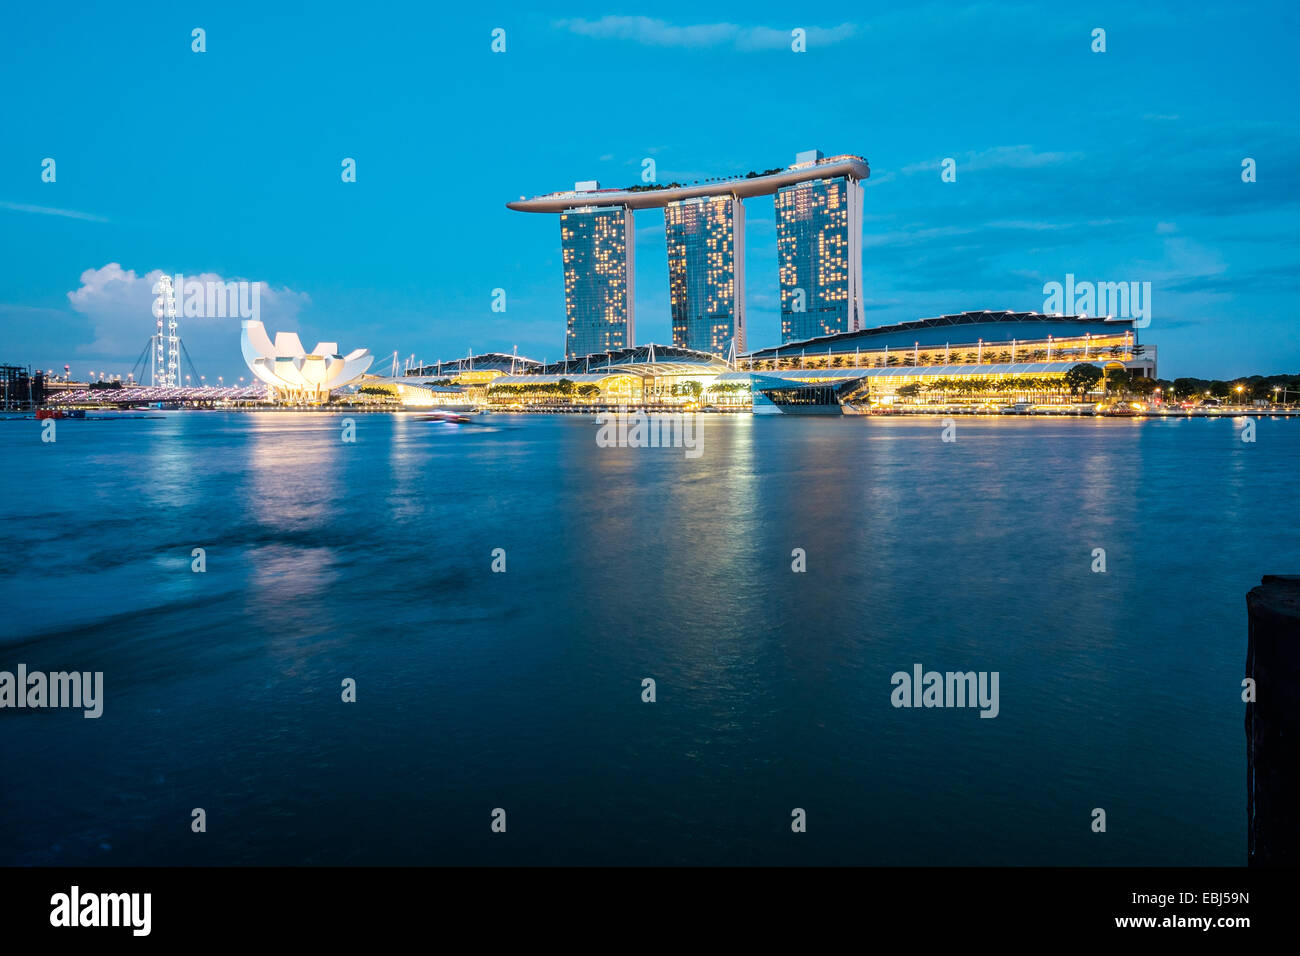 Modern architecture by the bay in Singapore - Stock Image